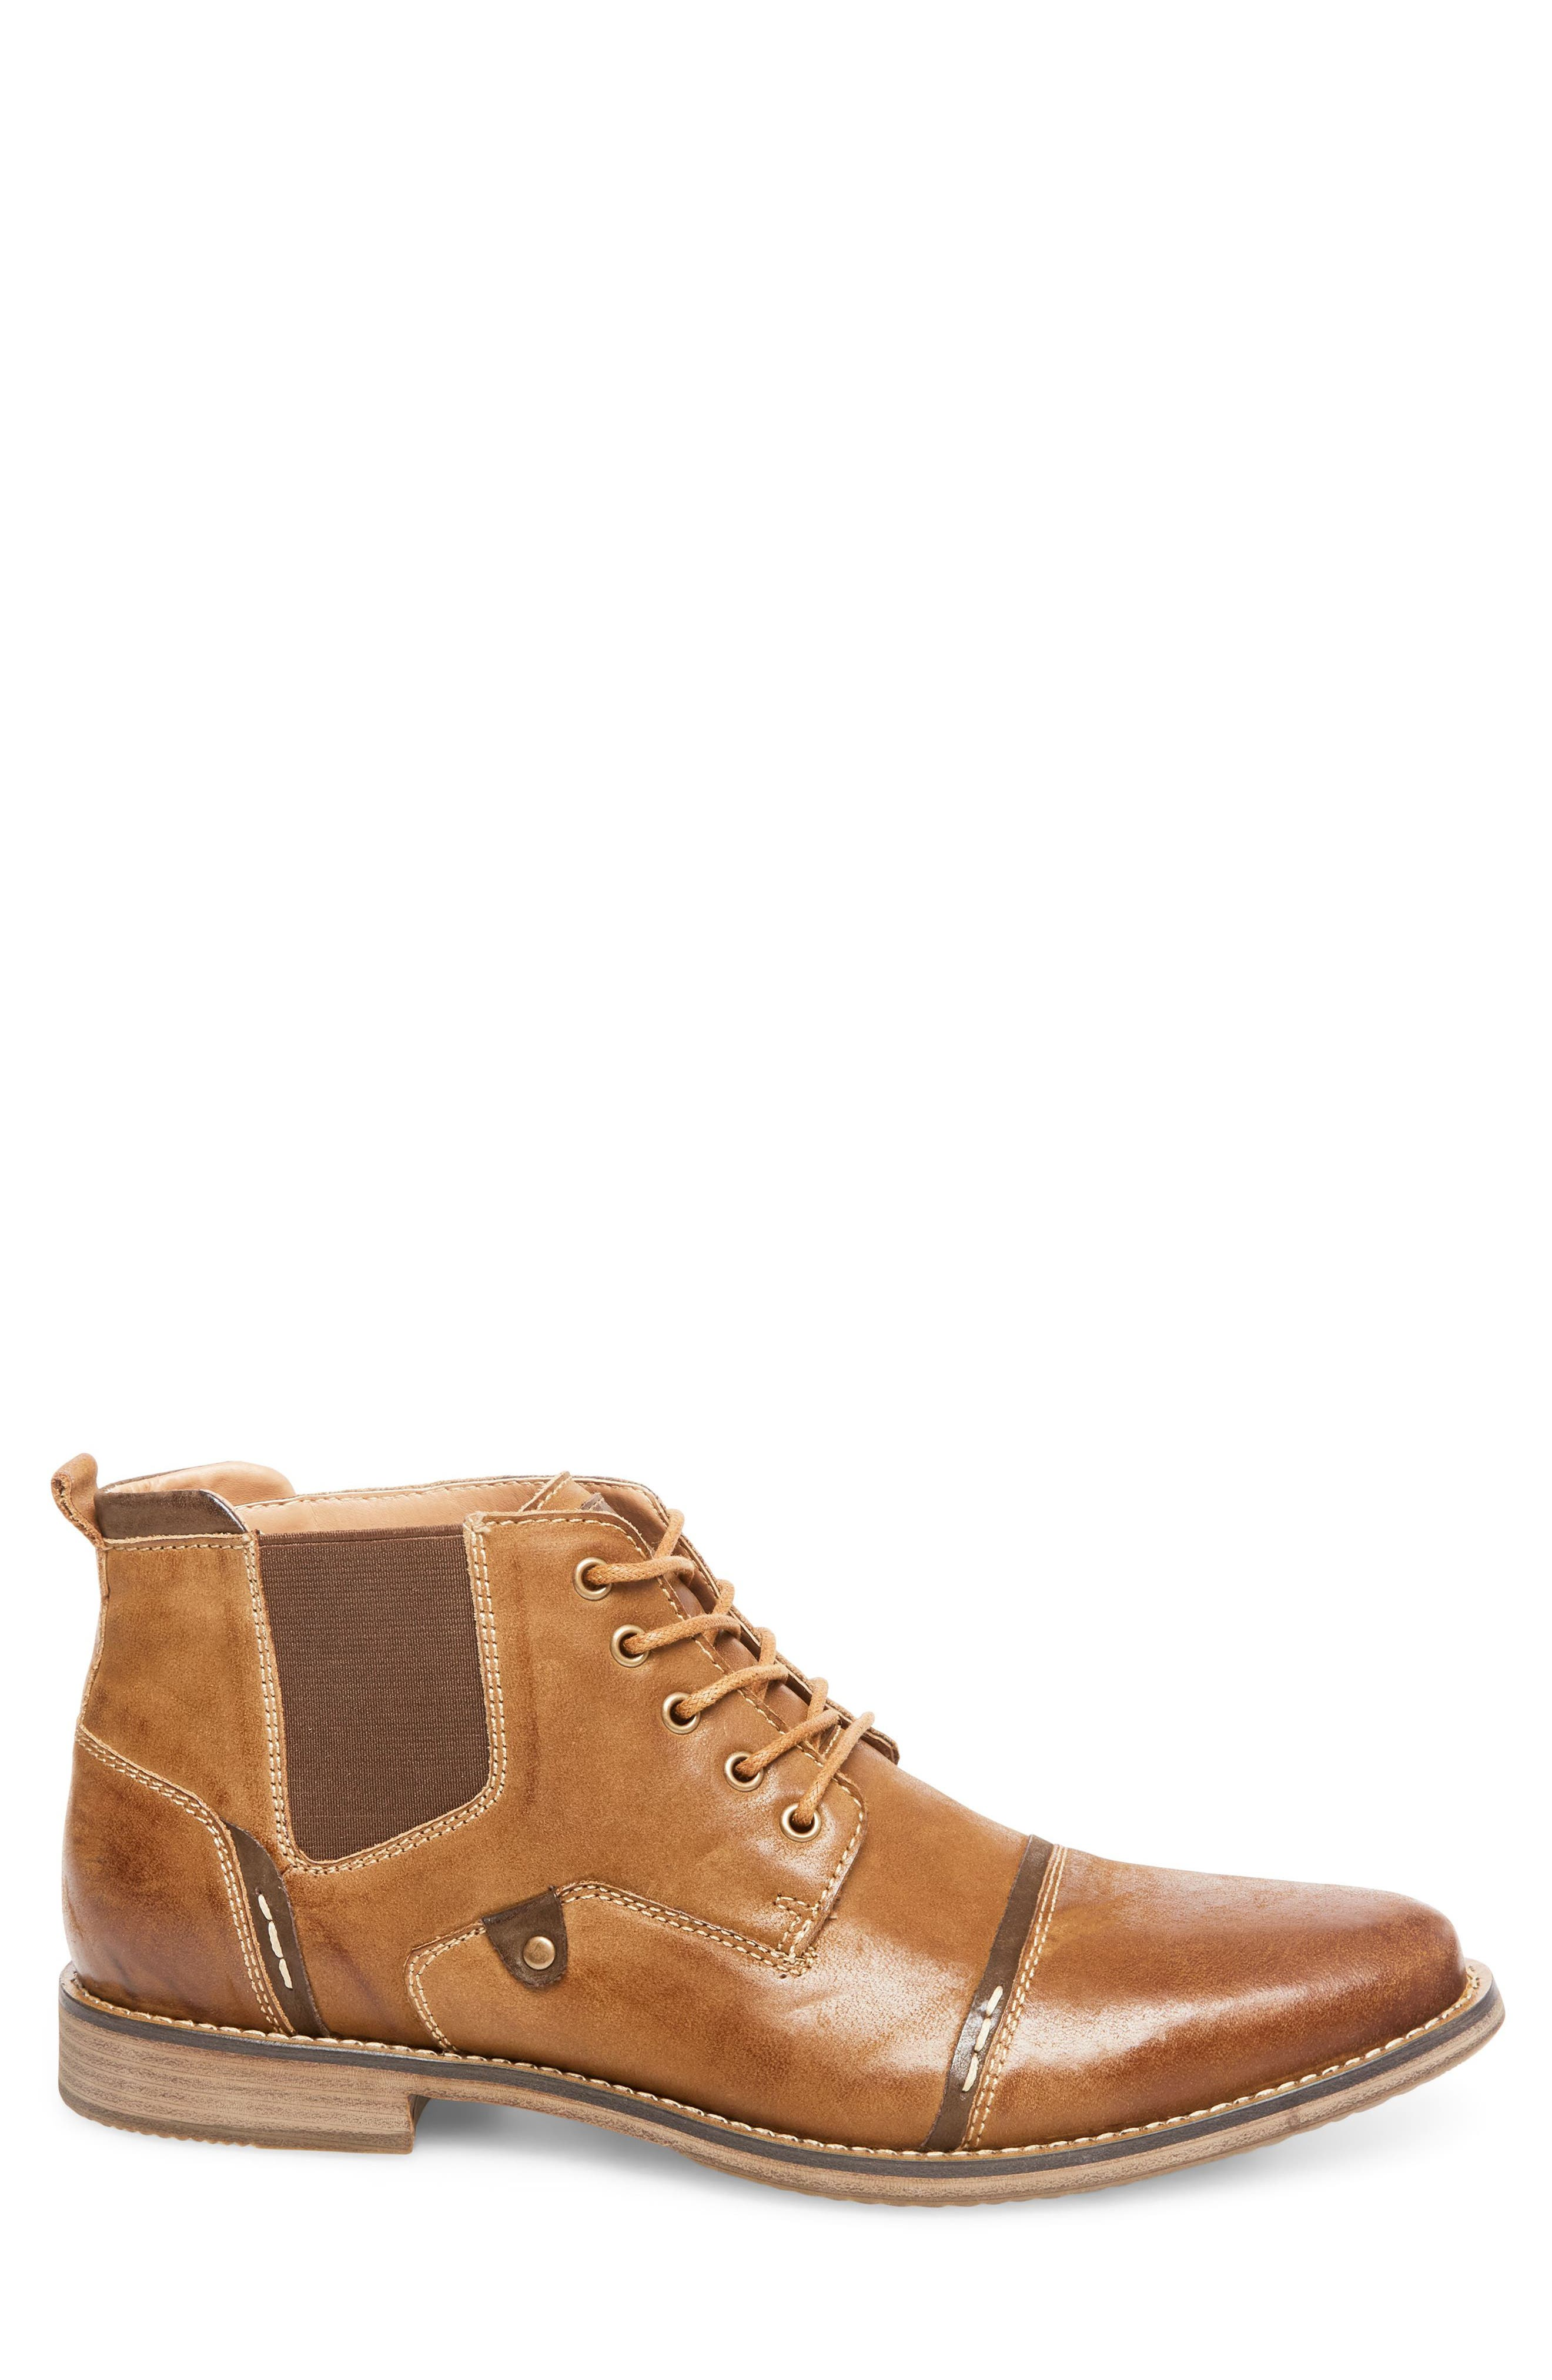 Proxy Cap Toe Boot,                             Alternate thumbnail 3, color,                             200